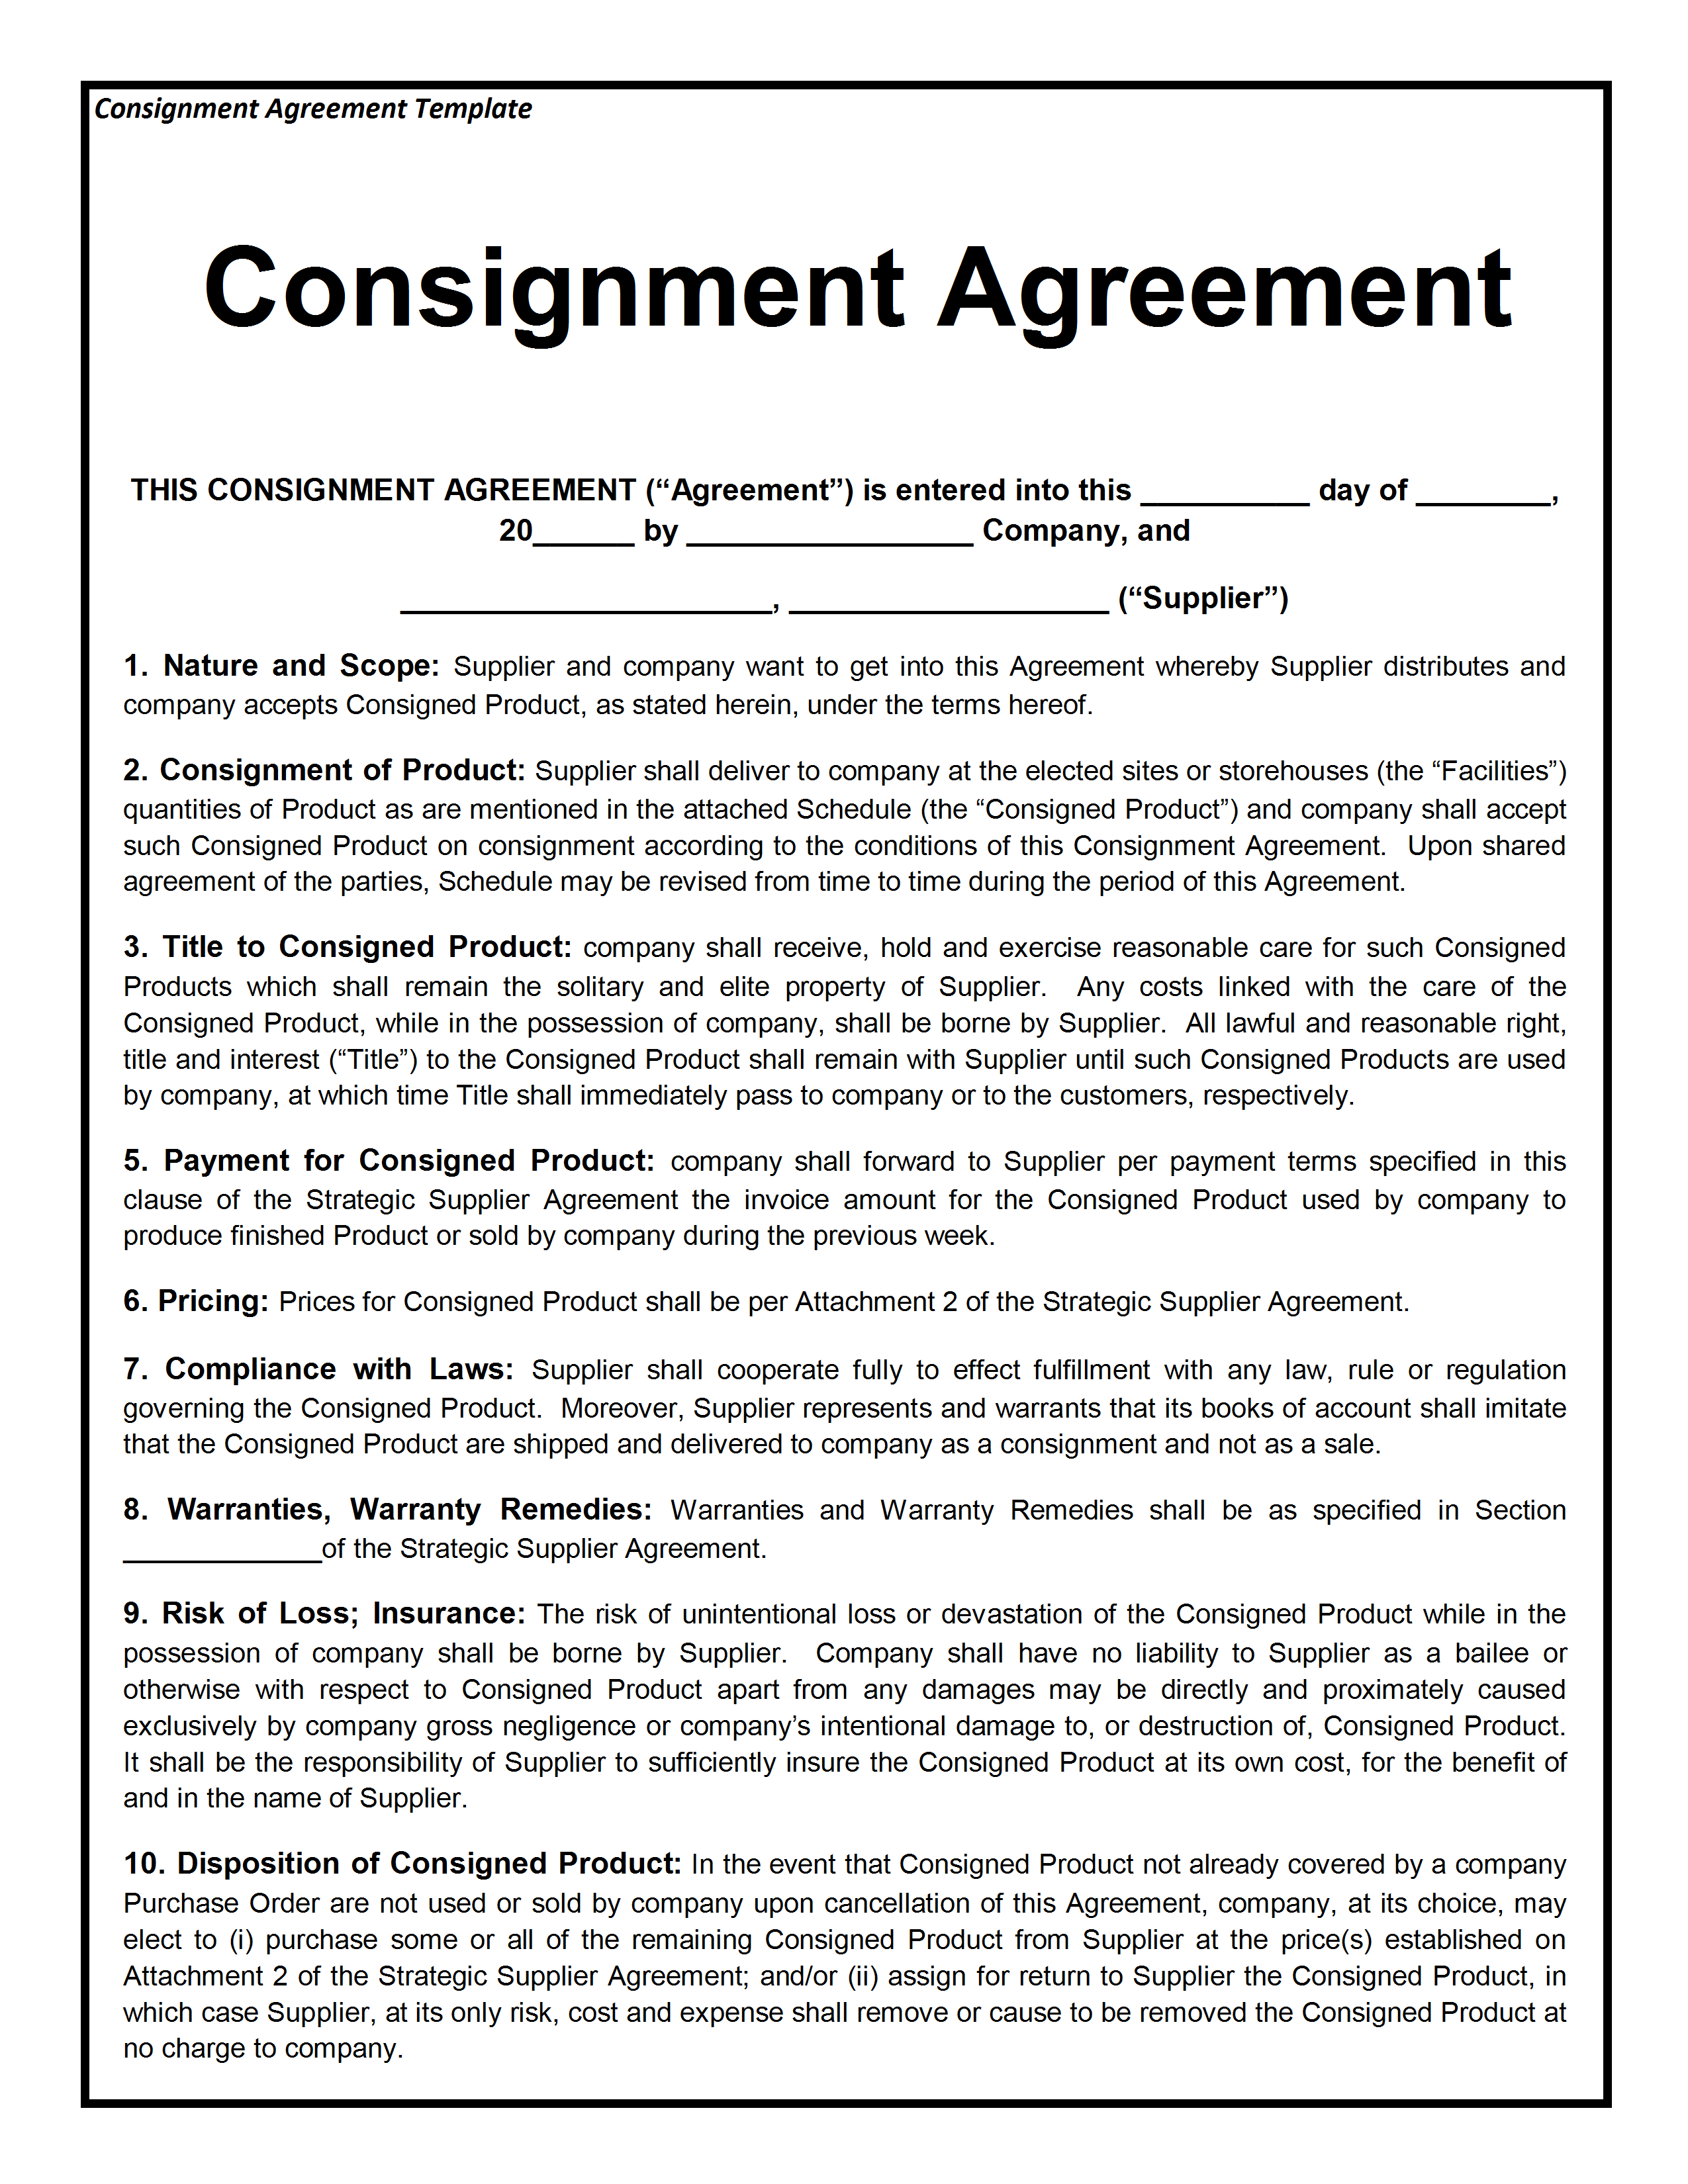 Consignment Contract Template